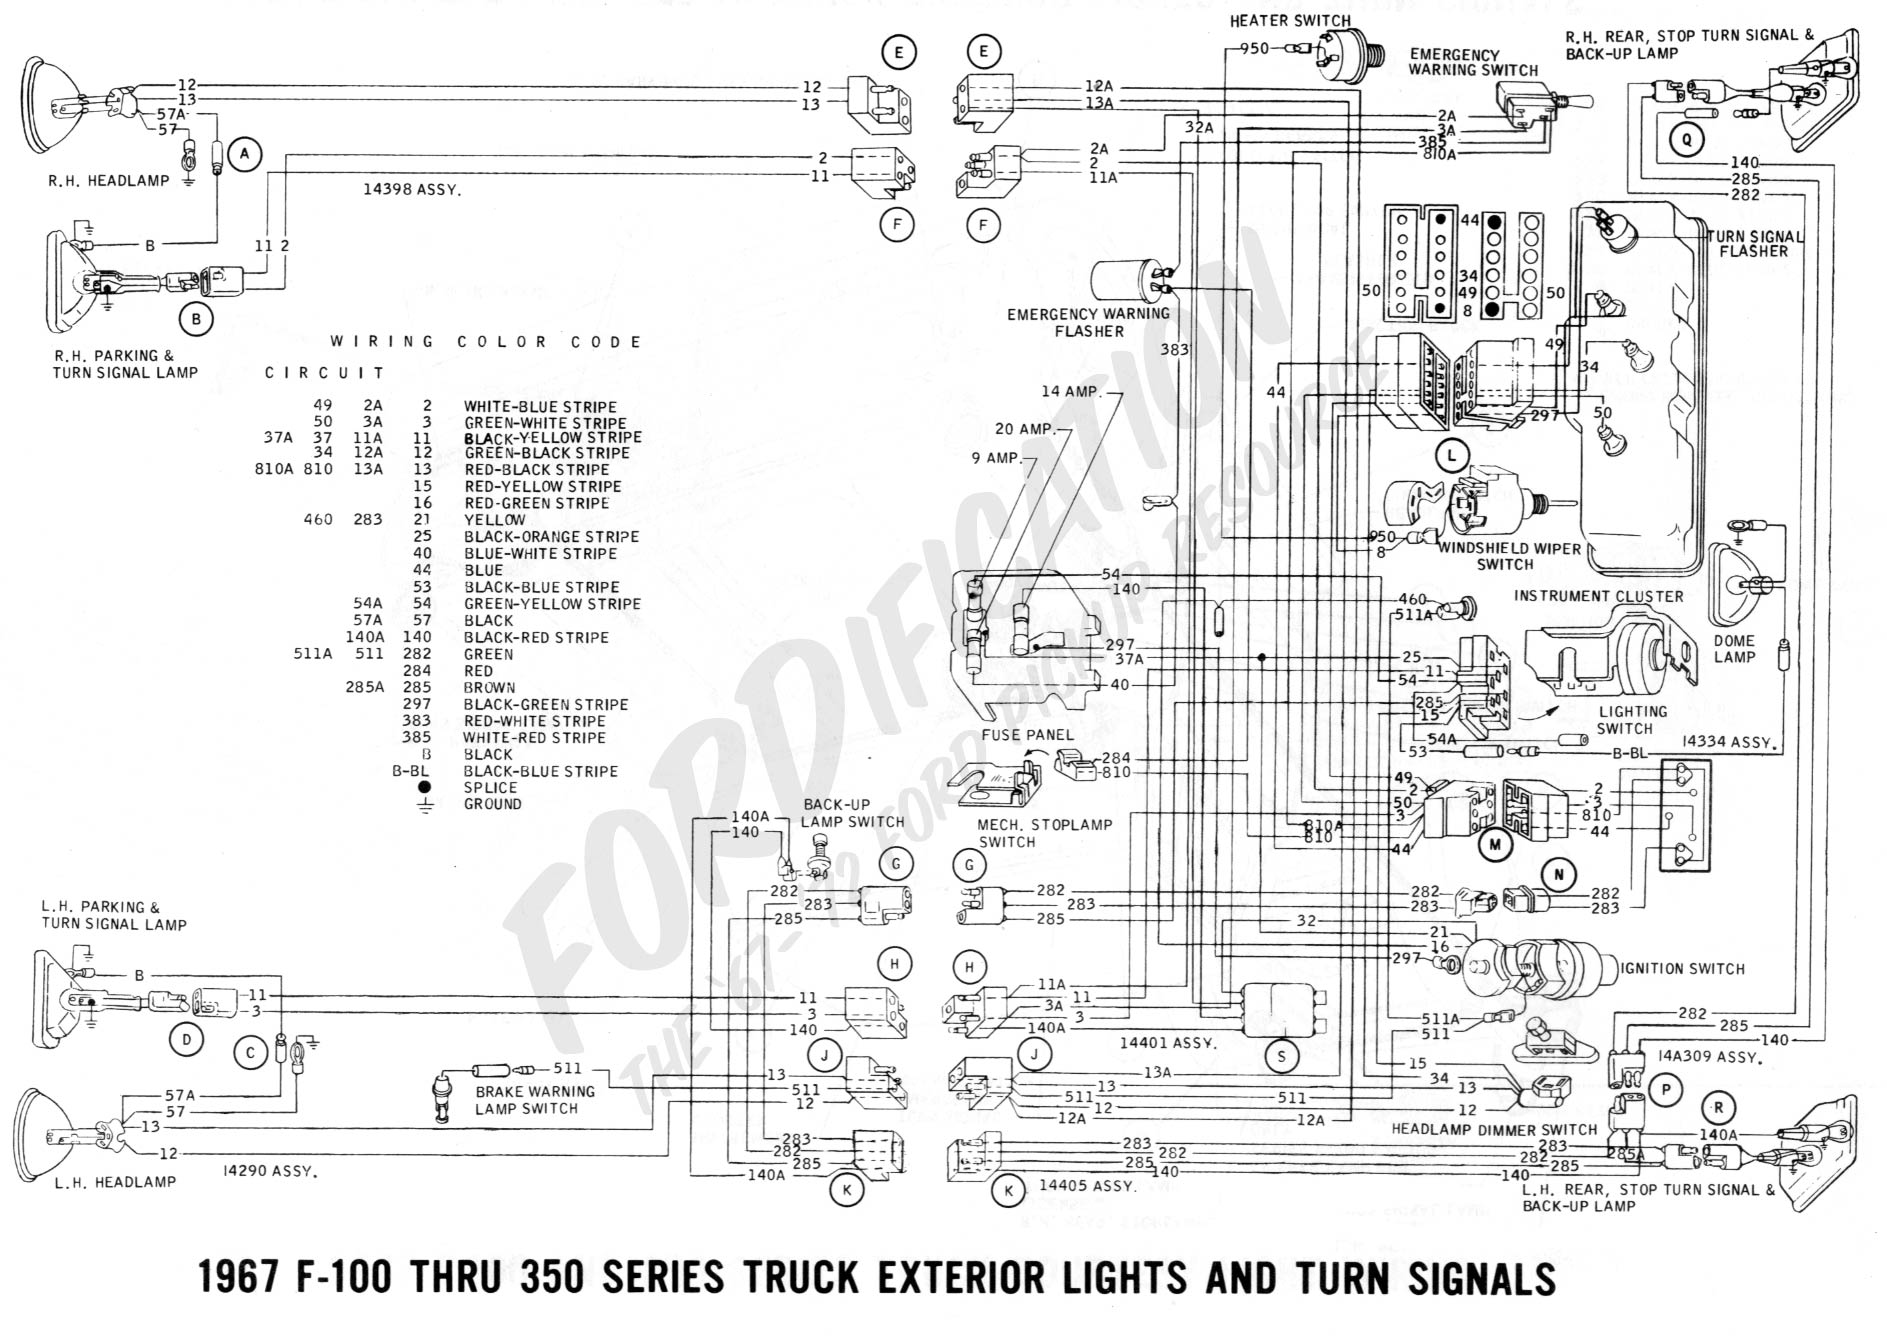 Ford Truck Technical Drawings And Schematics Section H Wiring 23 furthermore 1984 Fsj Grand Wagoneer Specification Diagrams additionally 1967 72 Gm Gmc Pu Wiper Switch additionally 1964 Chevy Impala 283 Wiring Diagram also 1193048 78 F250 Frame Schematic. on 1985 c10 wiring diagram